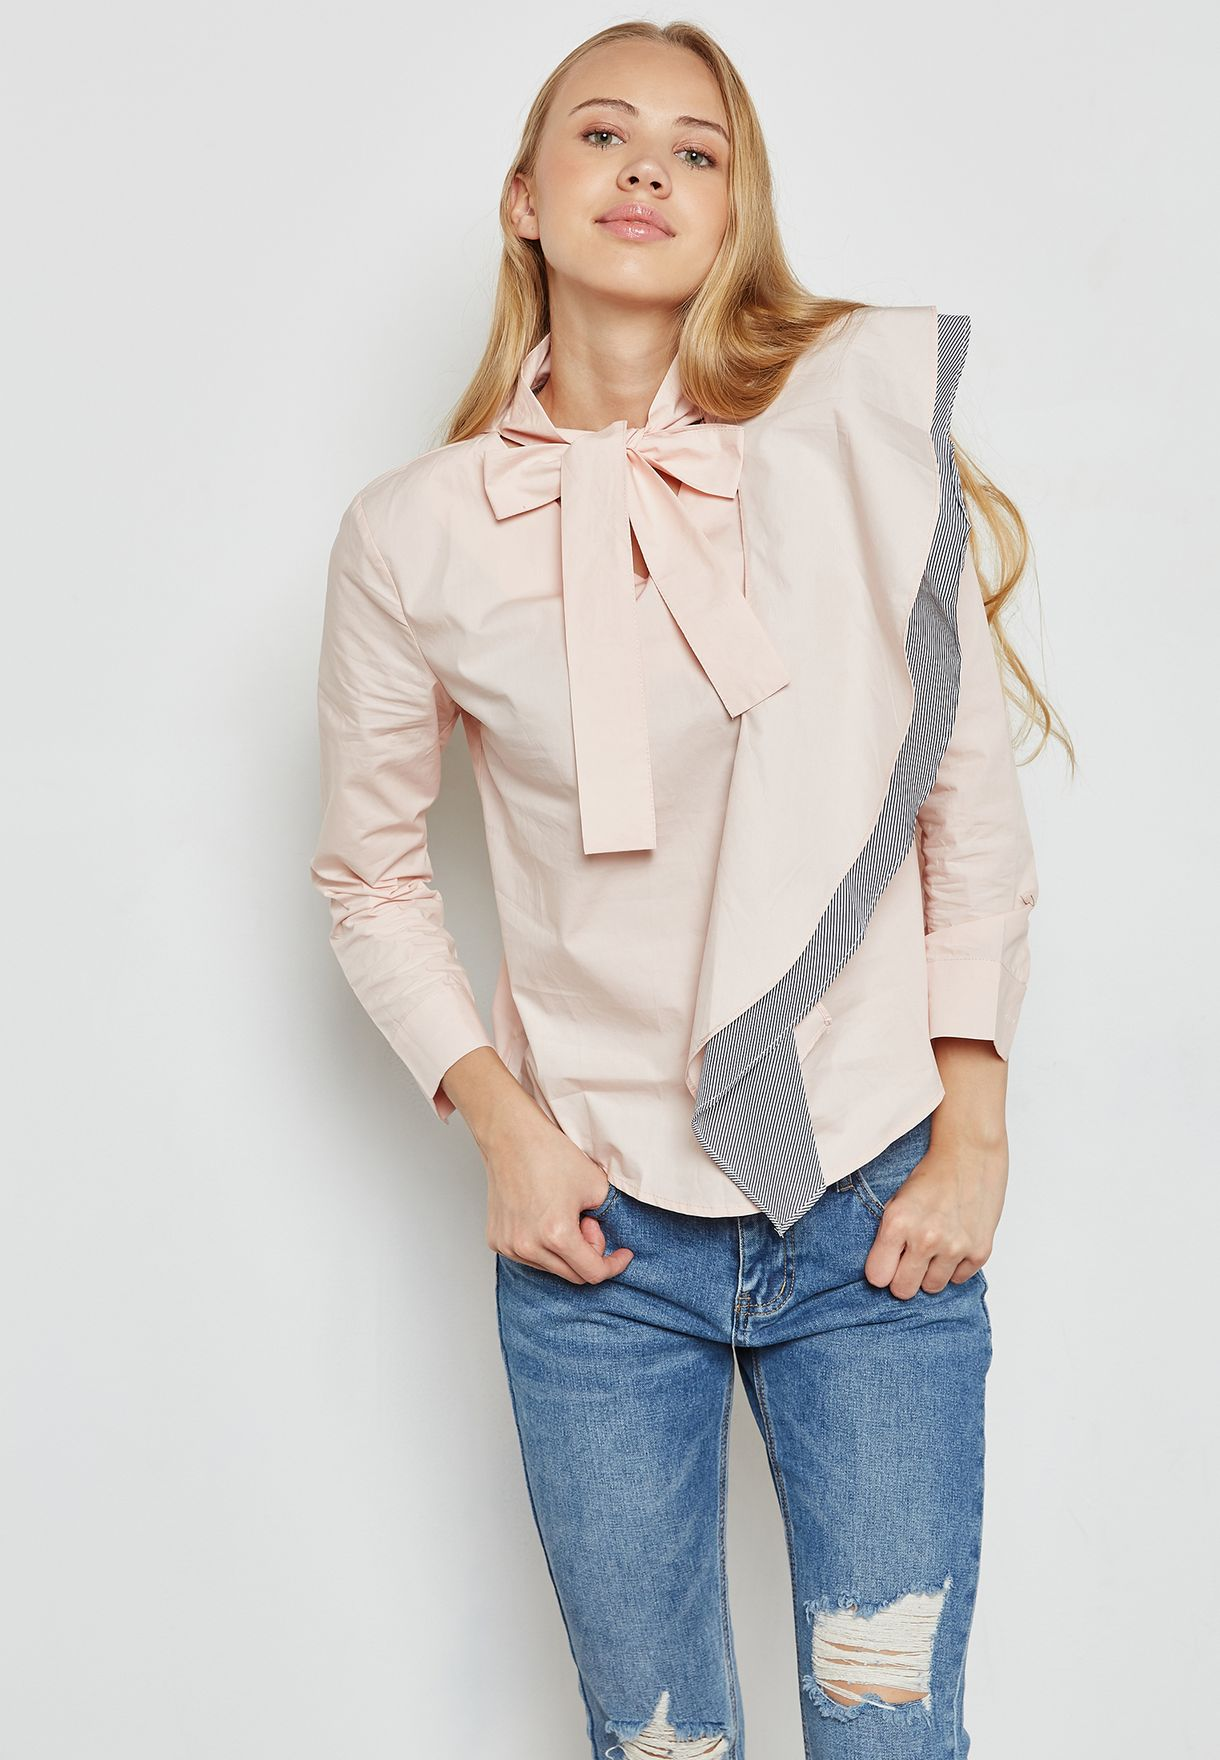 fe035a2dee588b Shop Ginger pink One Side Ruffle Tie Neck Top 2071  for Women in ...